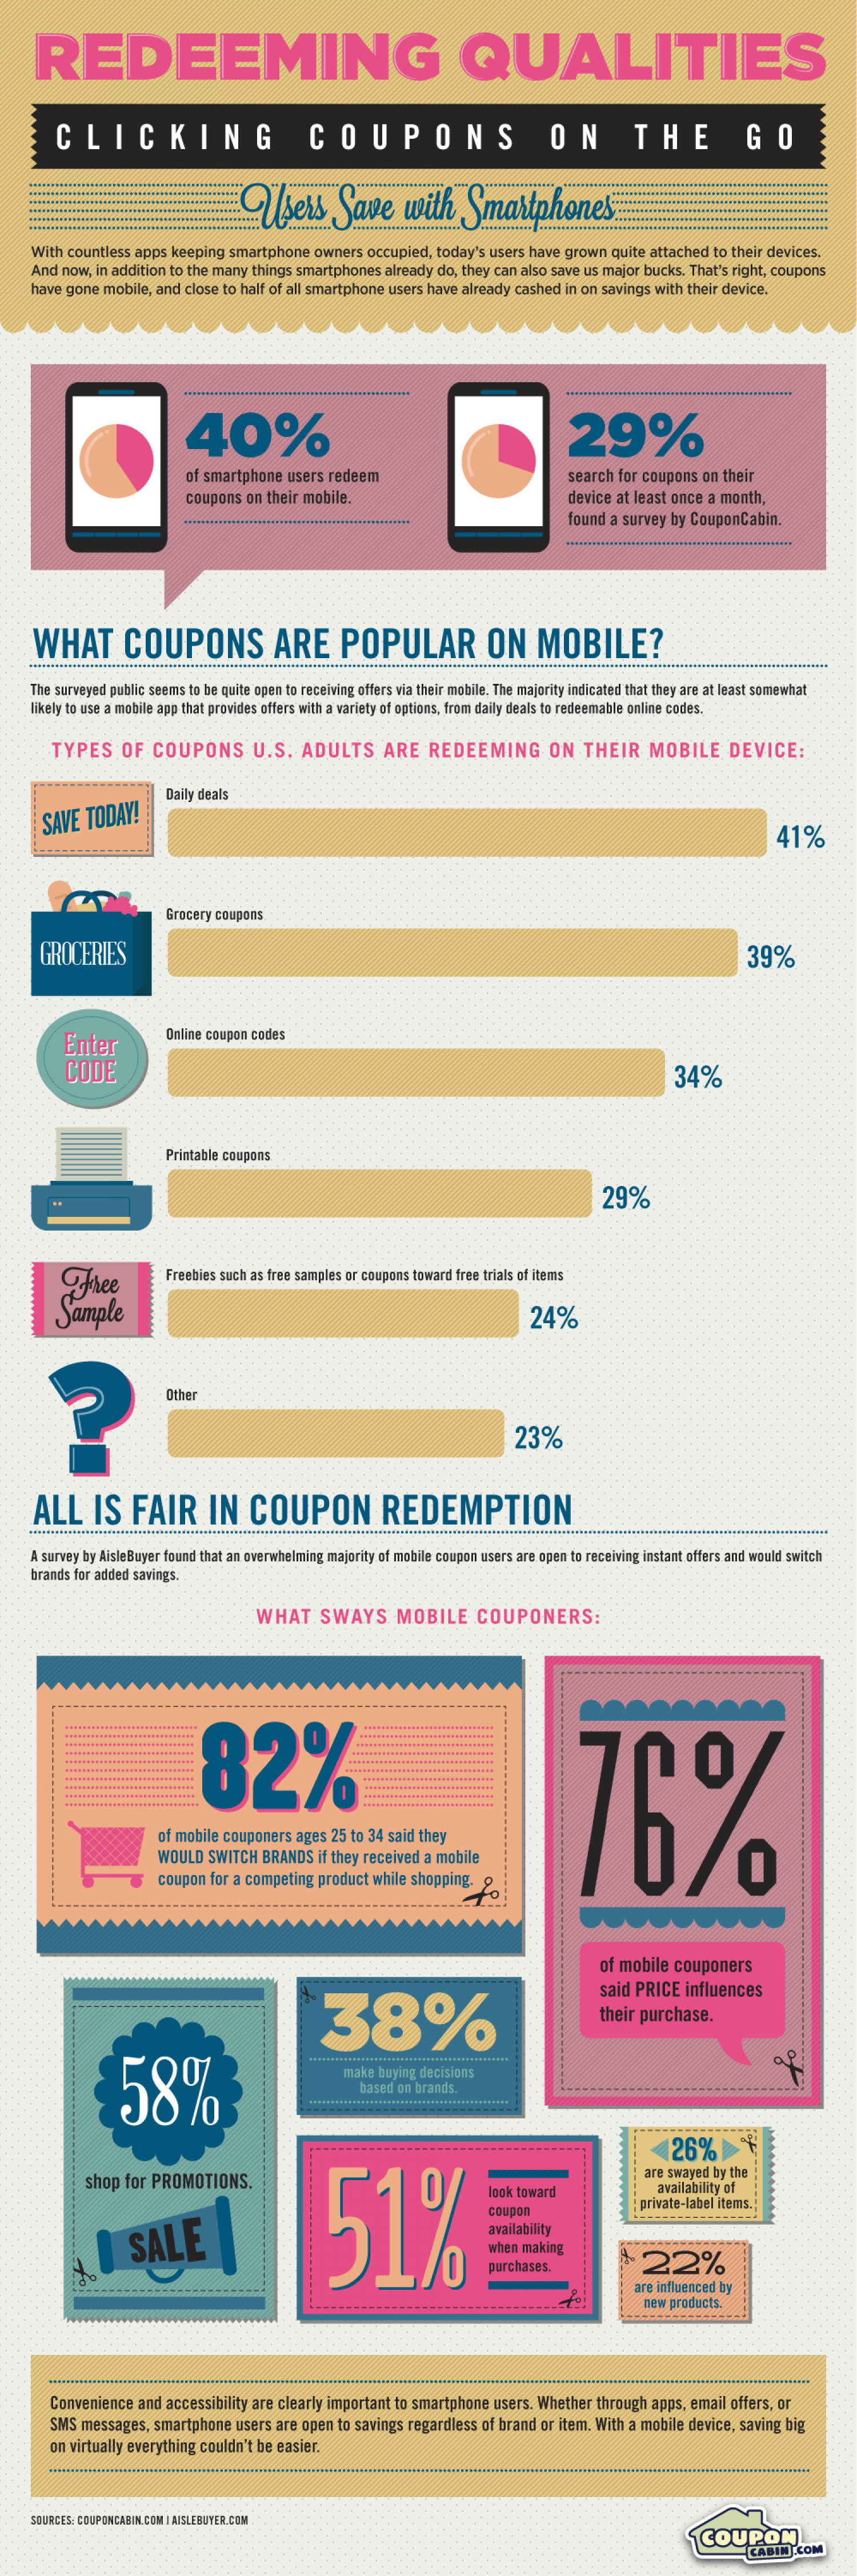 Redeeming Qualities: Clicking Coupons on the Go Infographic